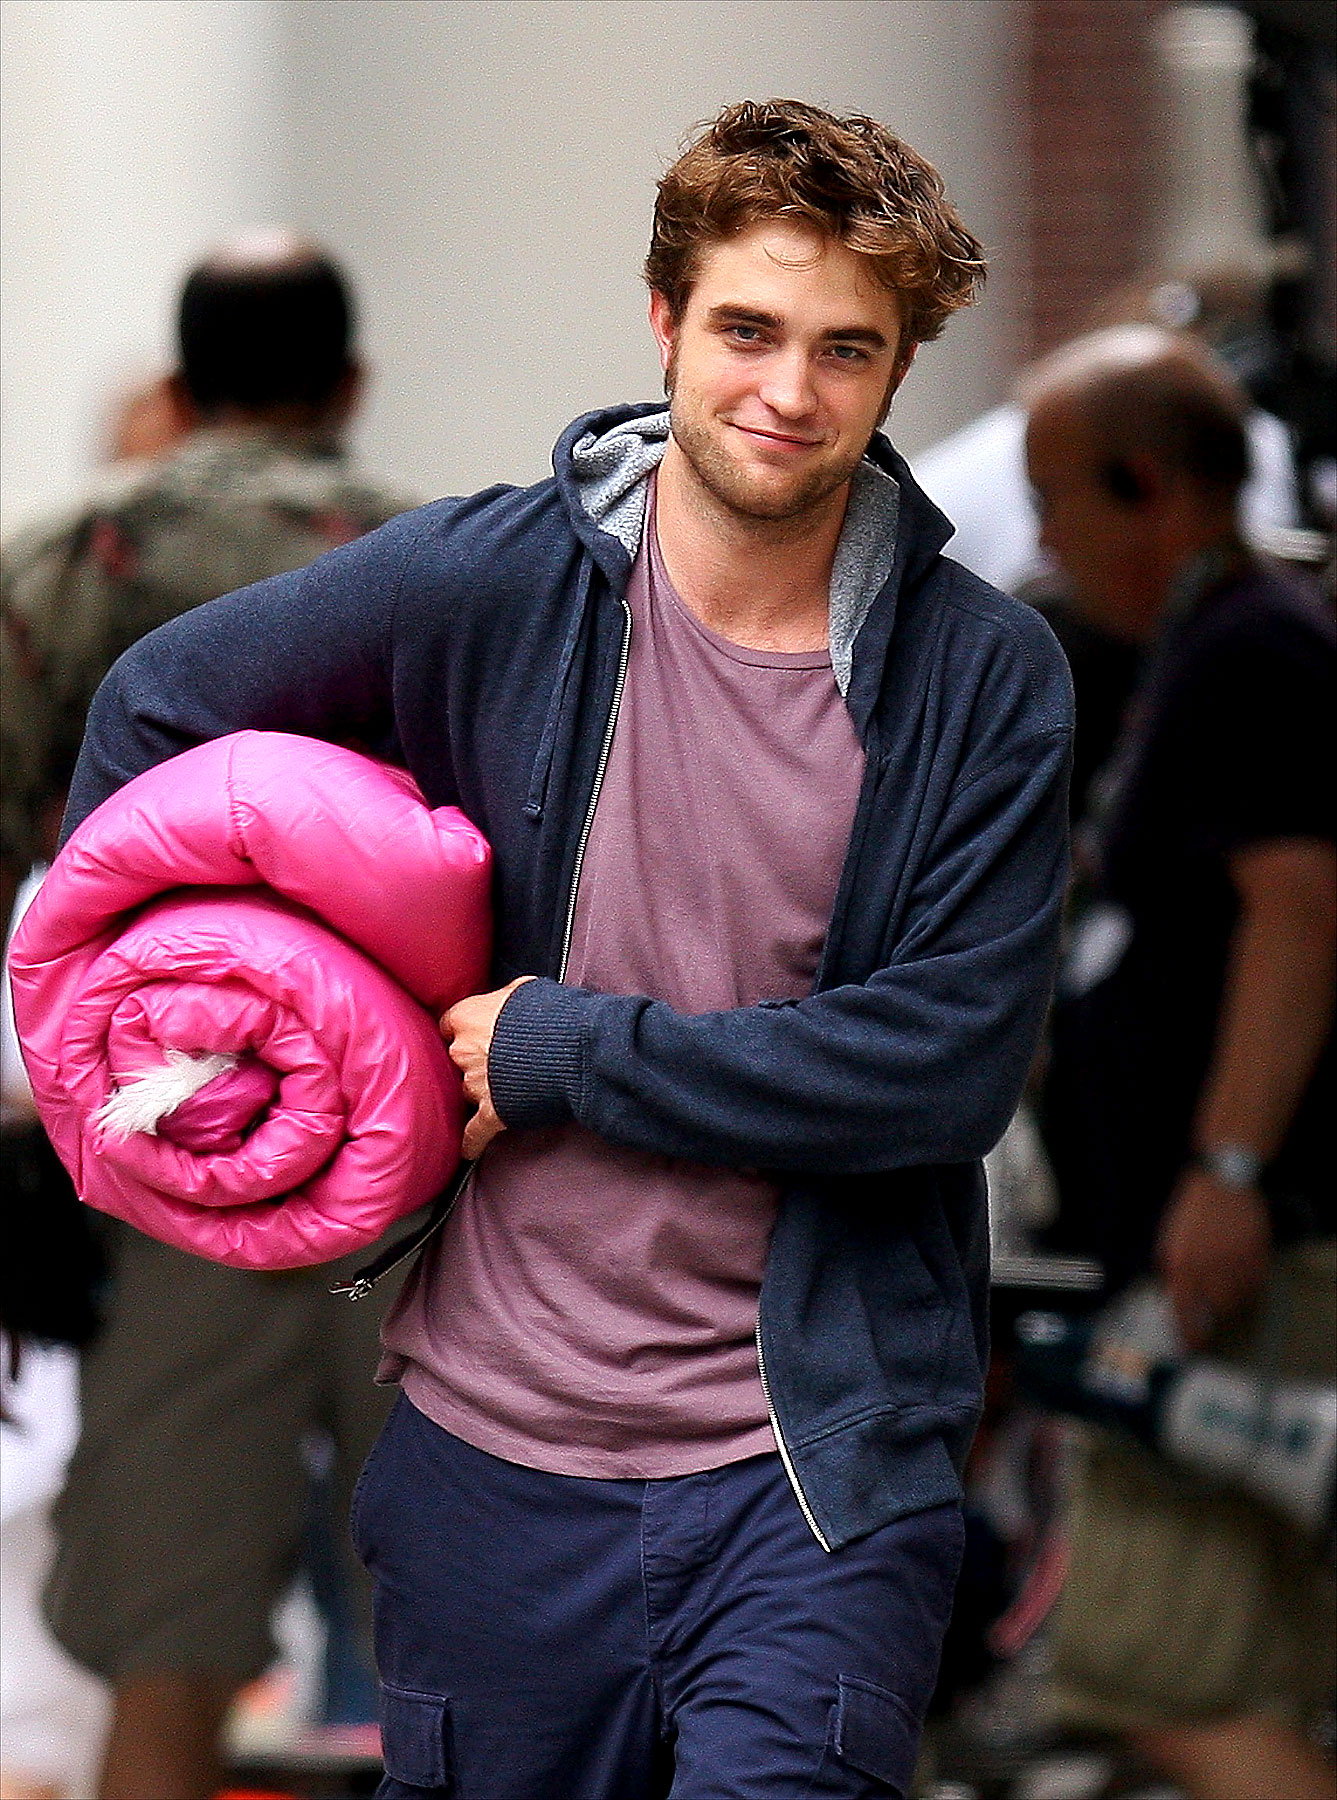 PHOTO GALLERY: Robert Pattinson's Pink Sleeping Bag